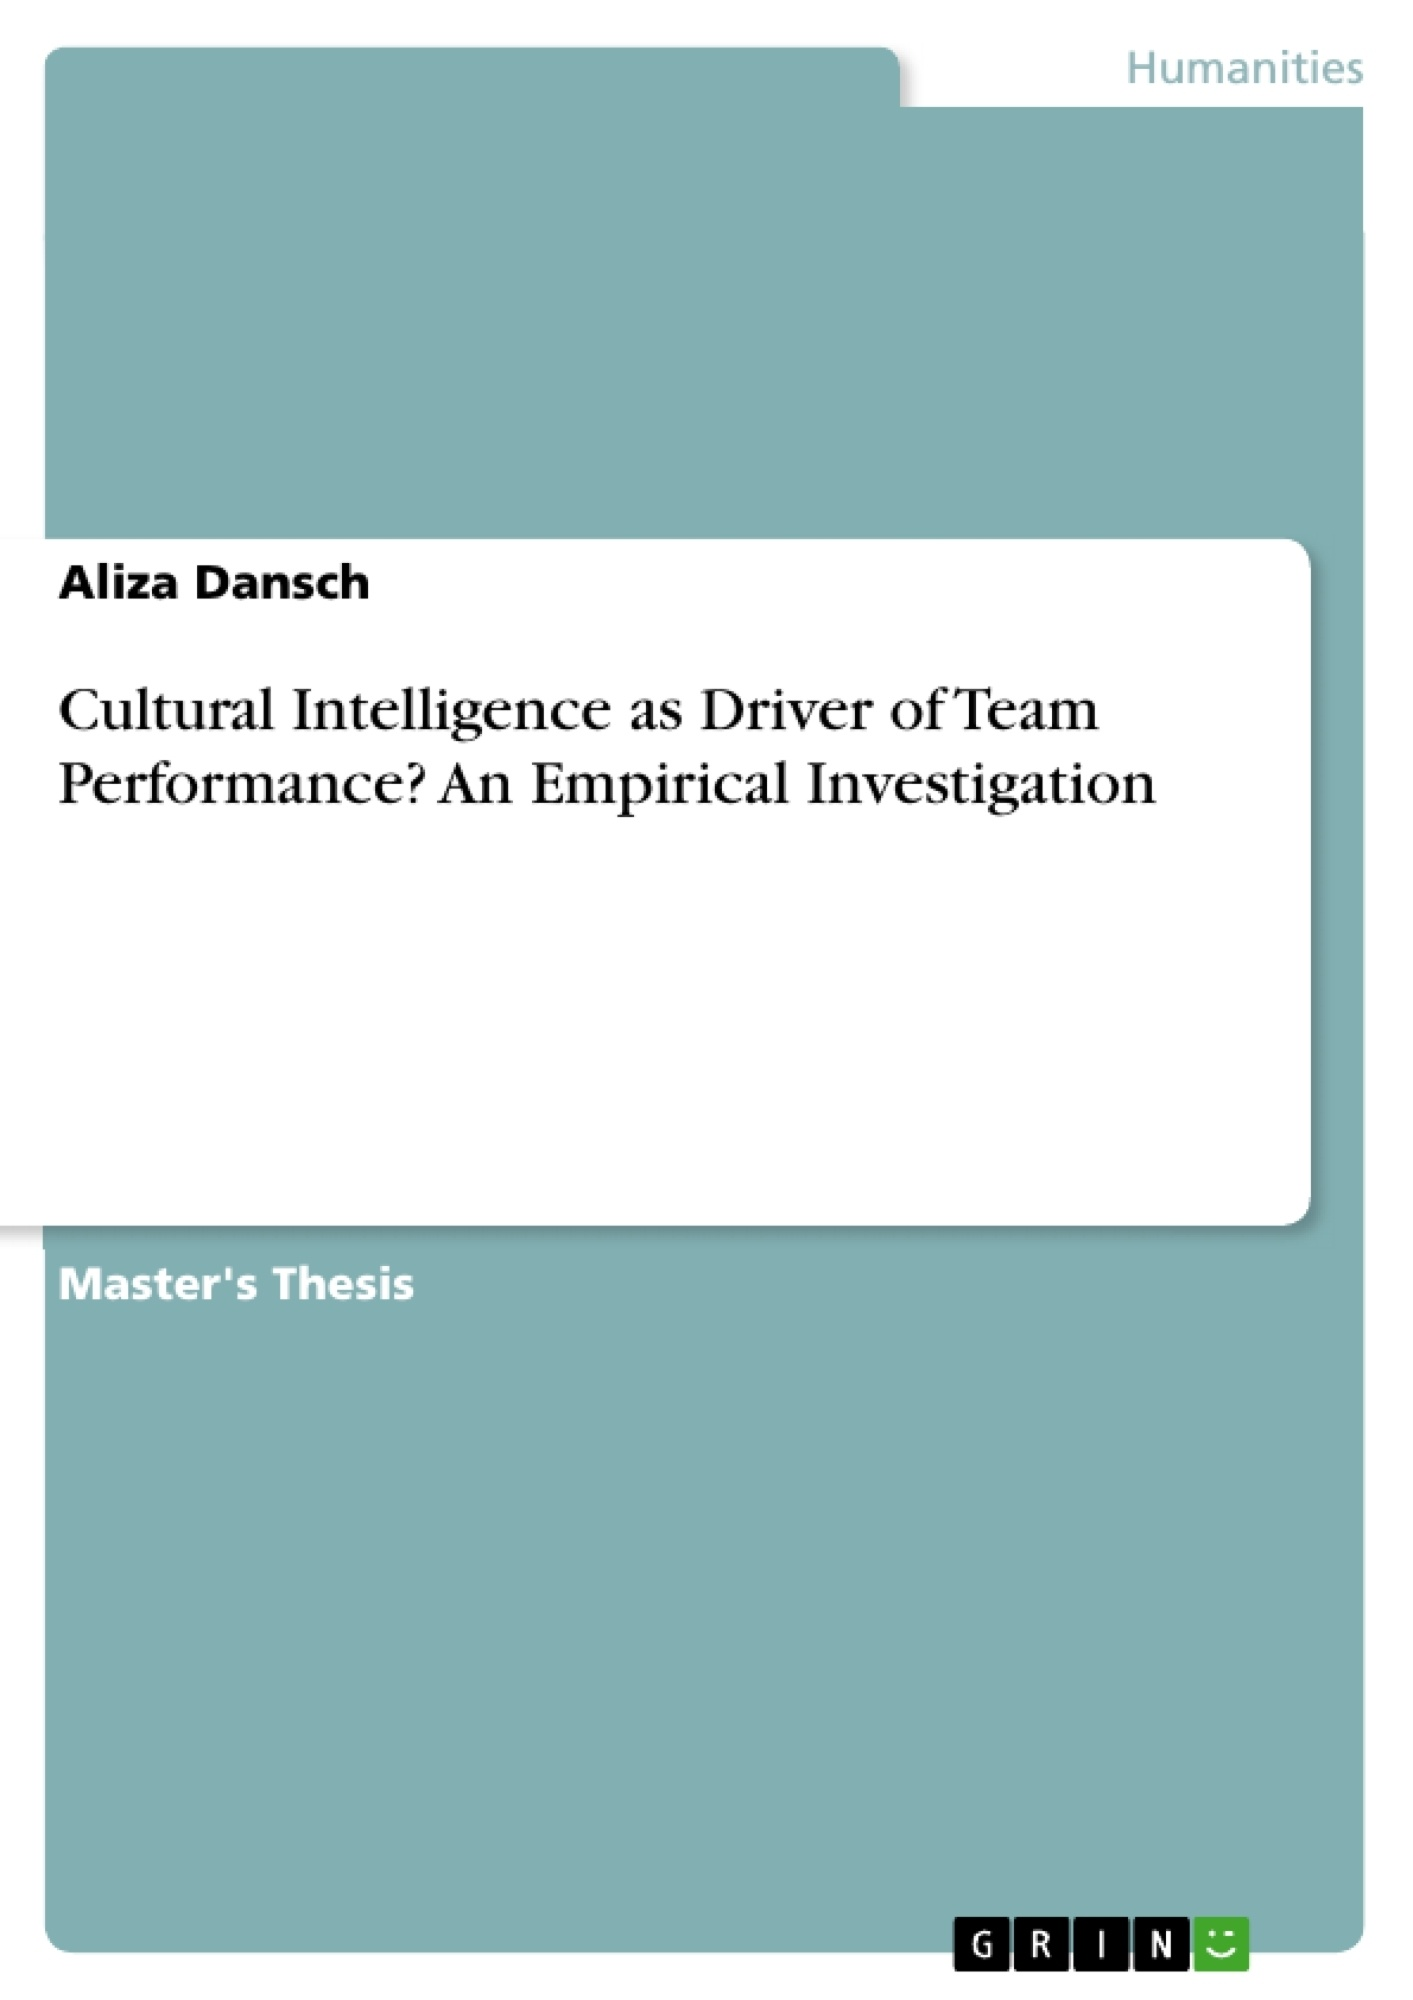 Title: Cultural Intelligence as Driver of Team Performance? An Empirical Investigation